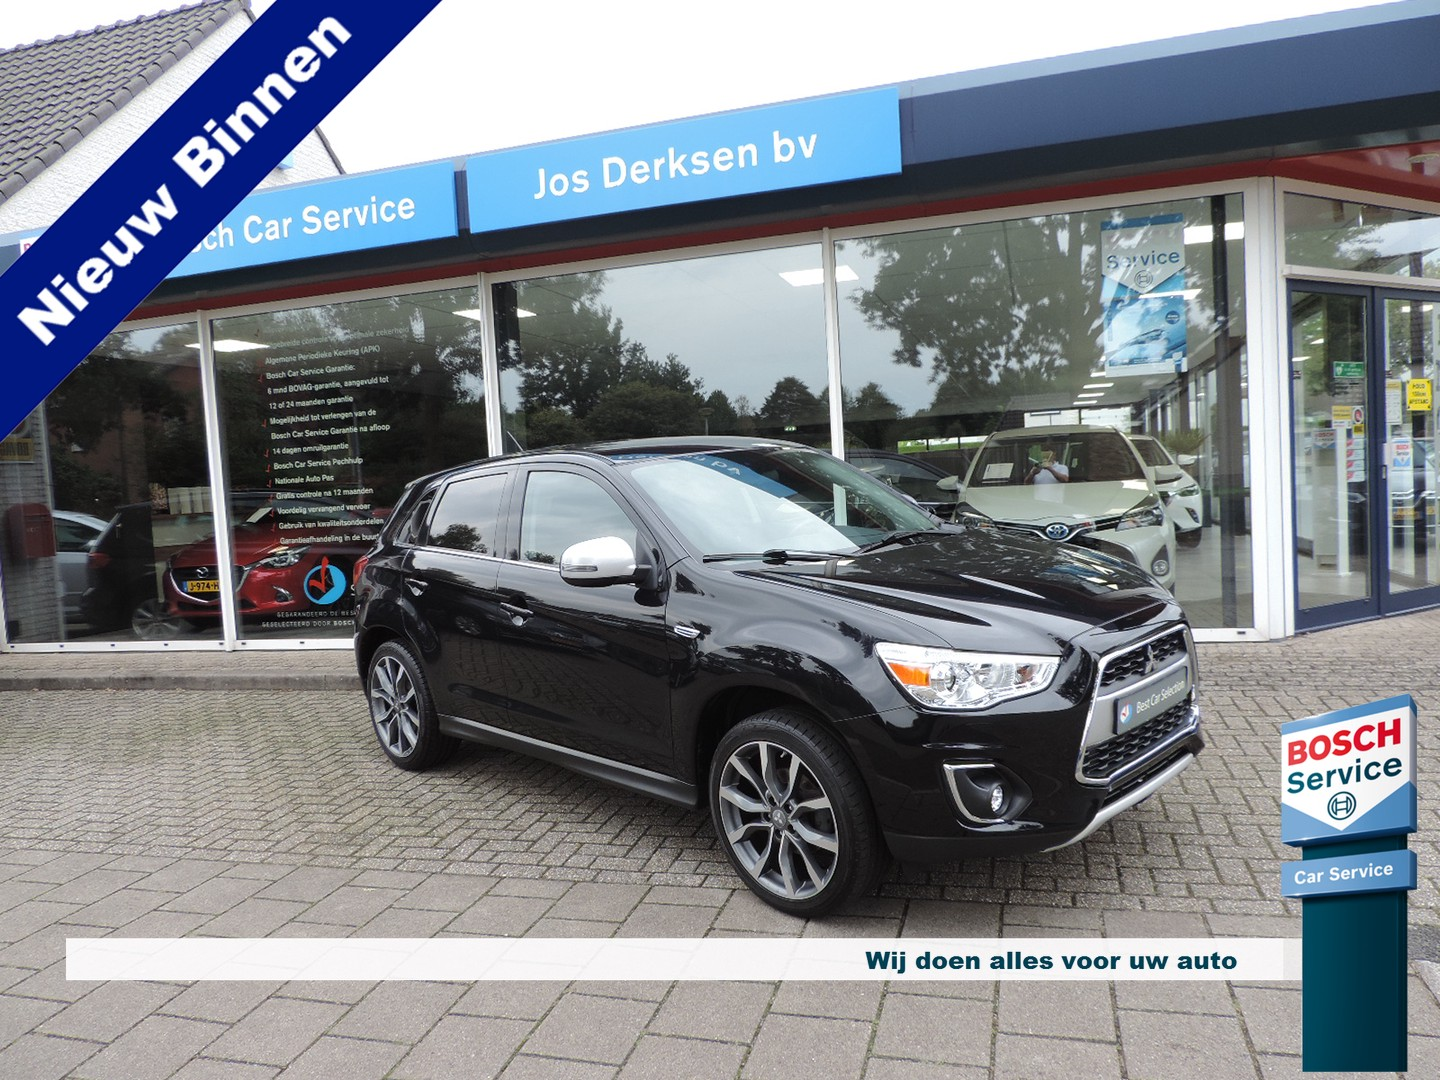 Mitsubishi Asx 1.6 cleartec diamant edition+ - camera